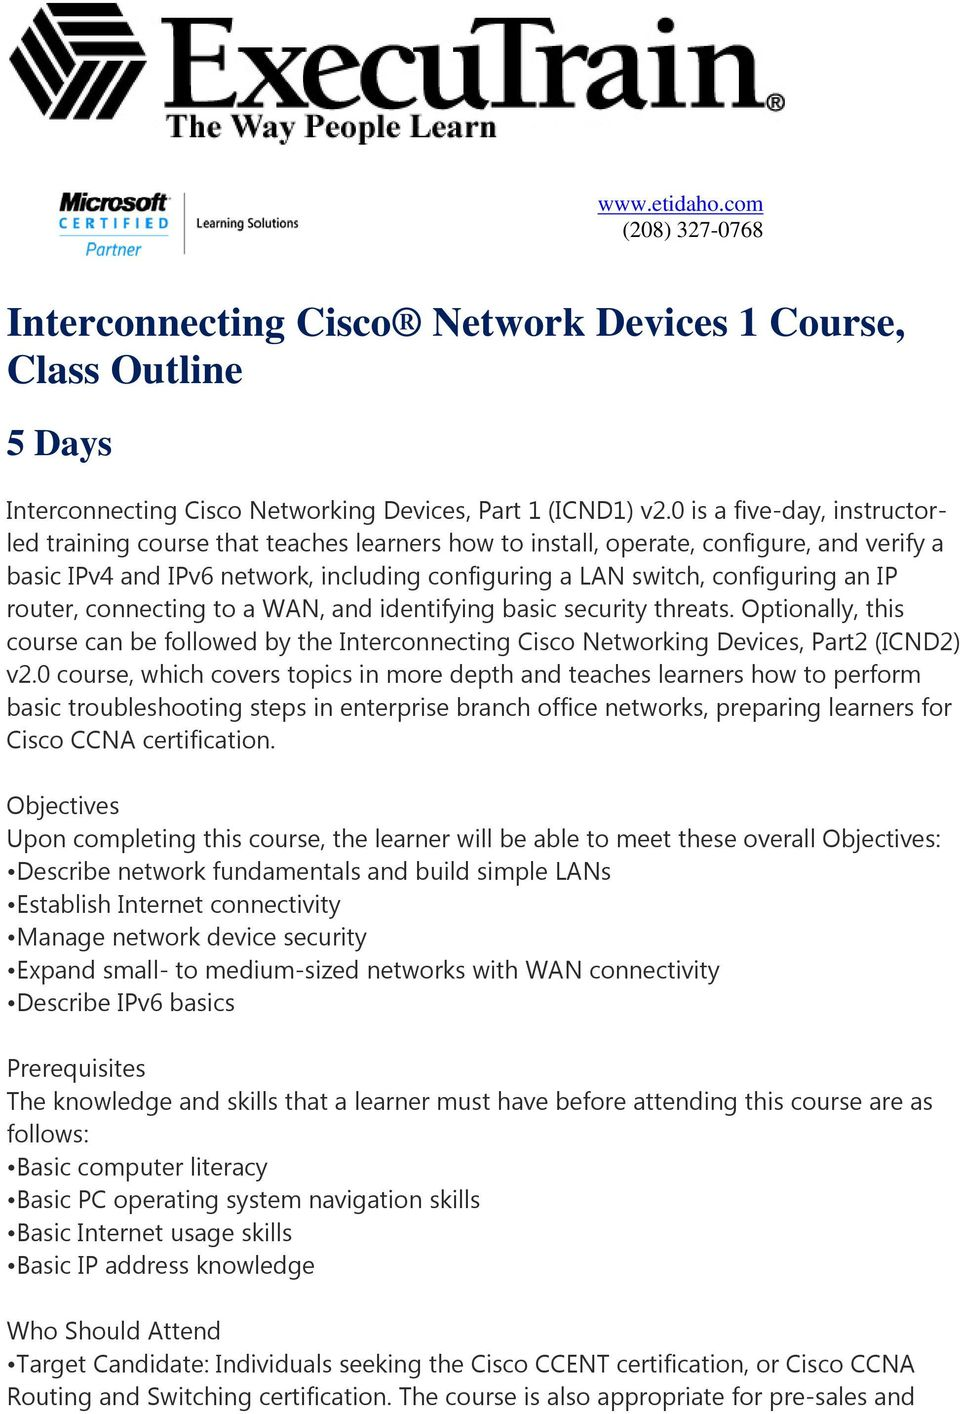 IP router, connecting to a WAN, and identifying basic security threats. Optionally, this course can be followed by the Interconnecting Cisco Networking Devices, Part2 (ICND2) v2.